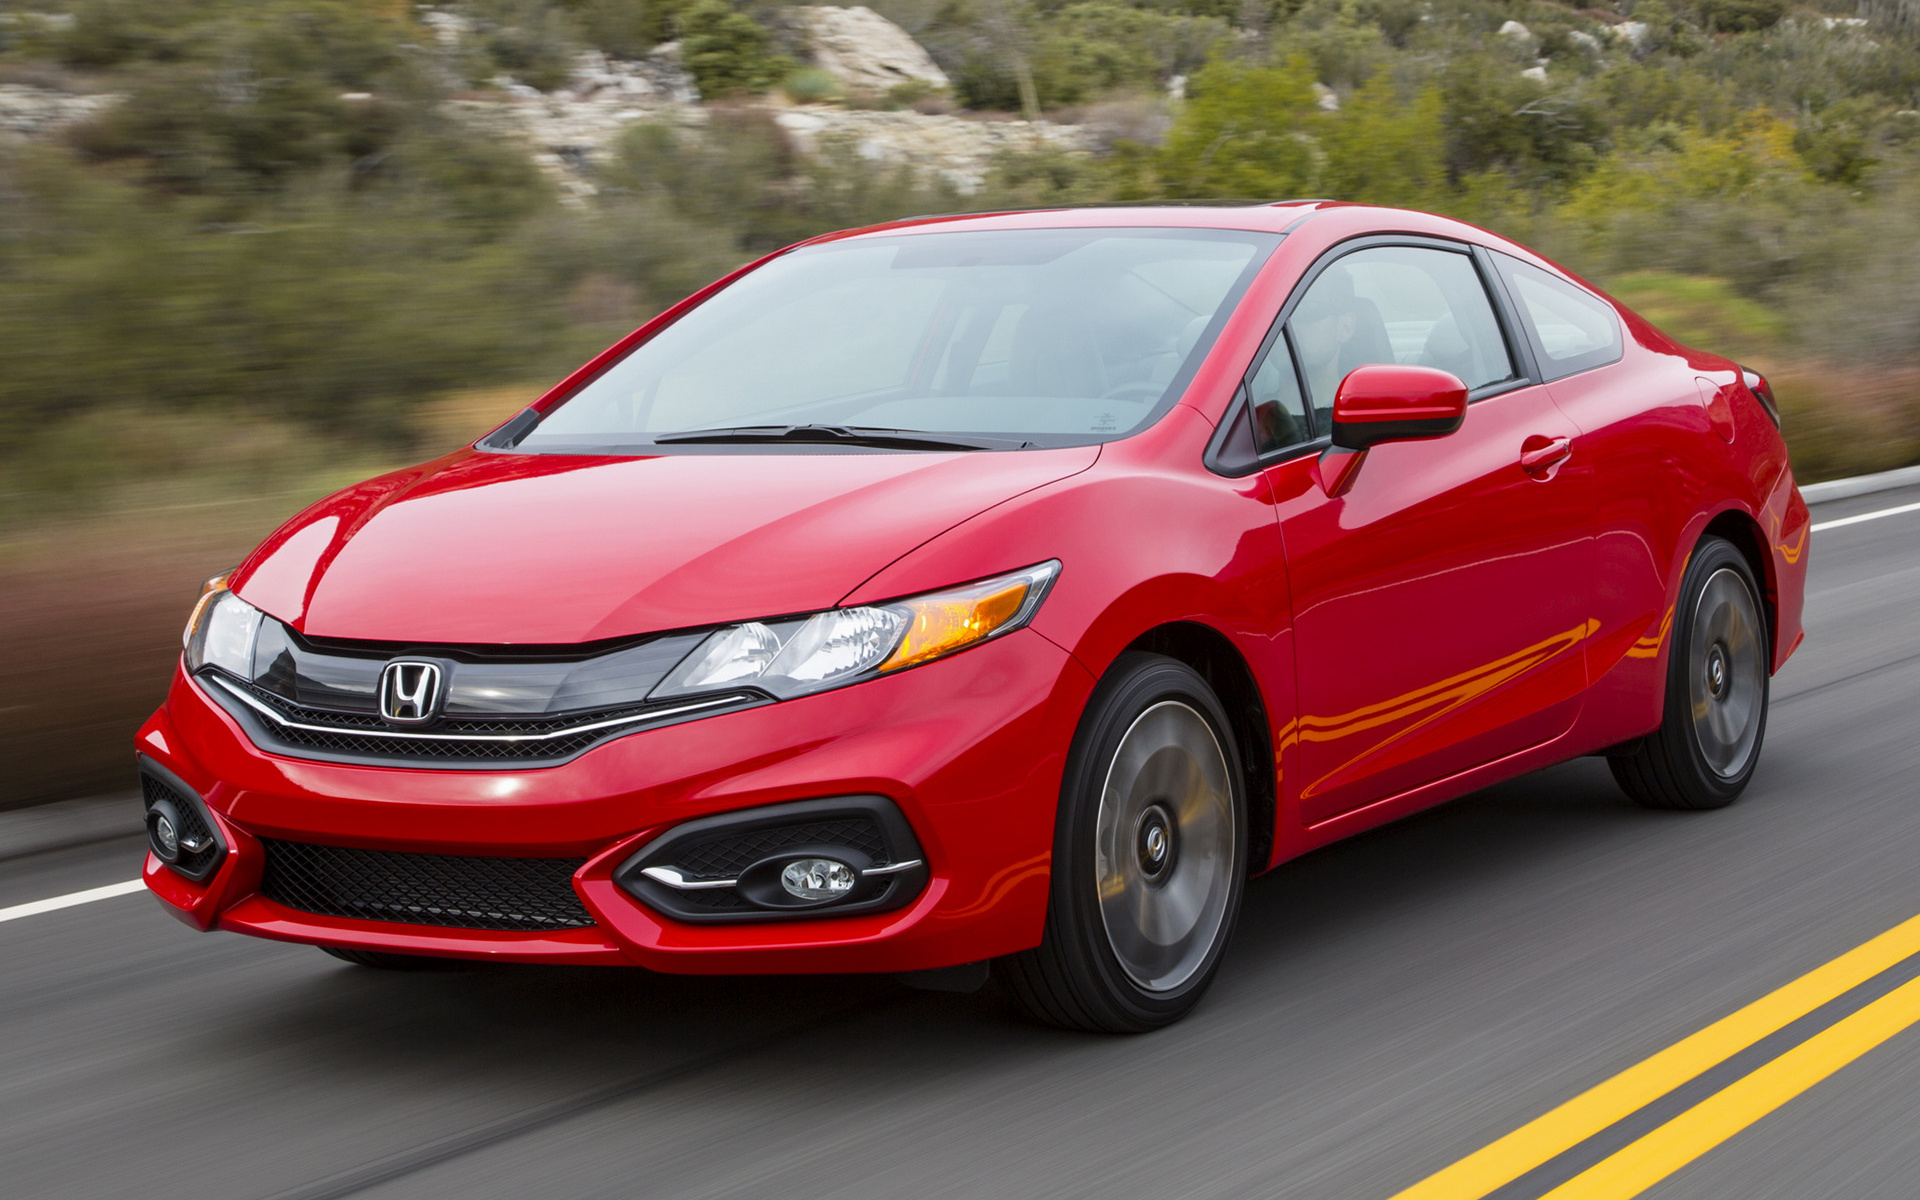 2014 Honda Civic Coupe - Wallpapers and HD Images | Car Pixel